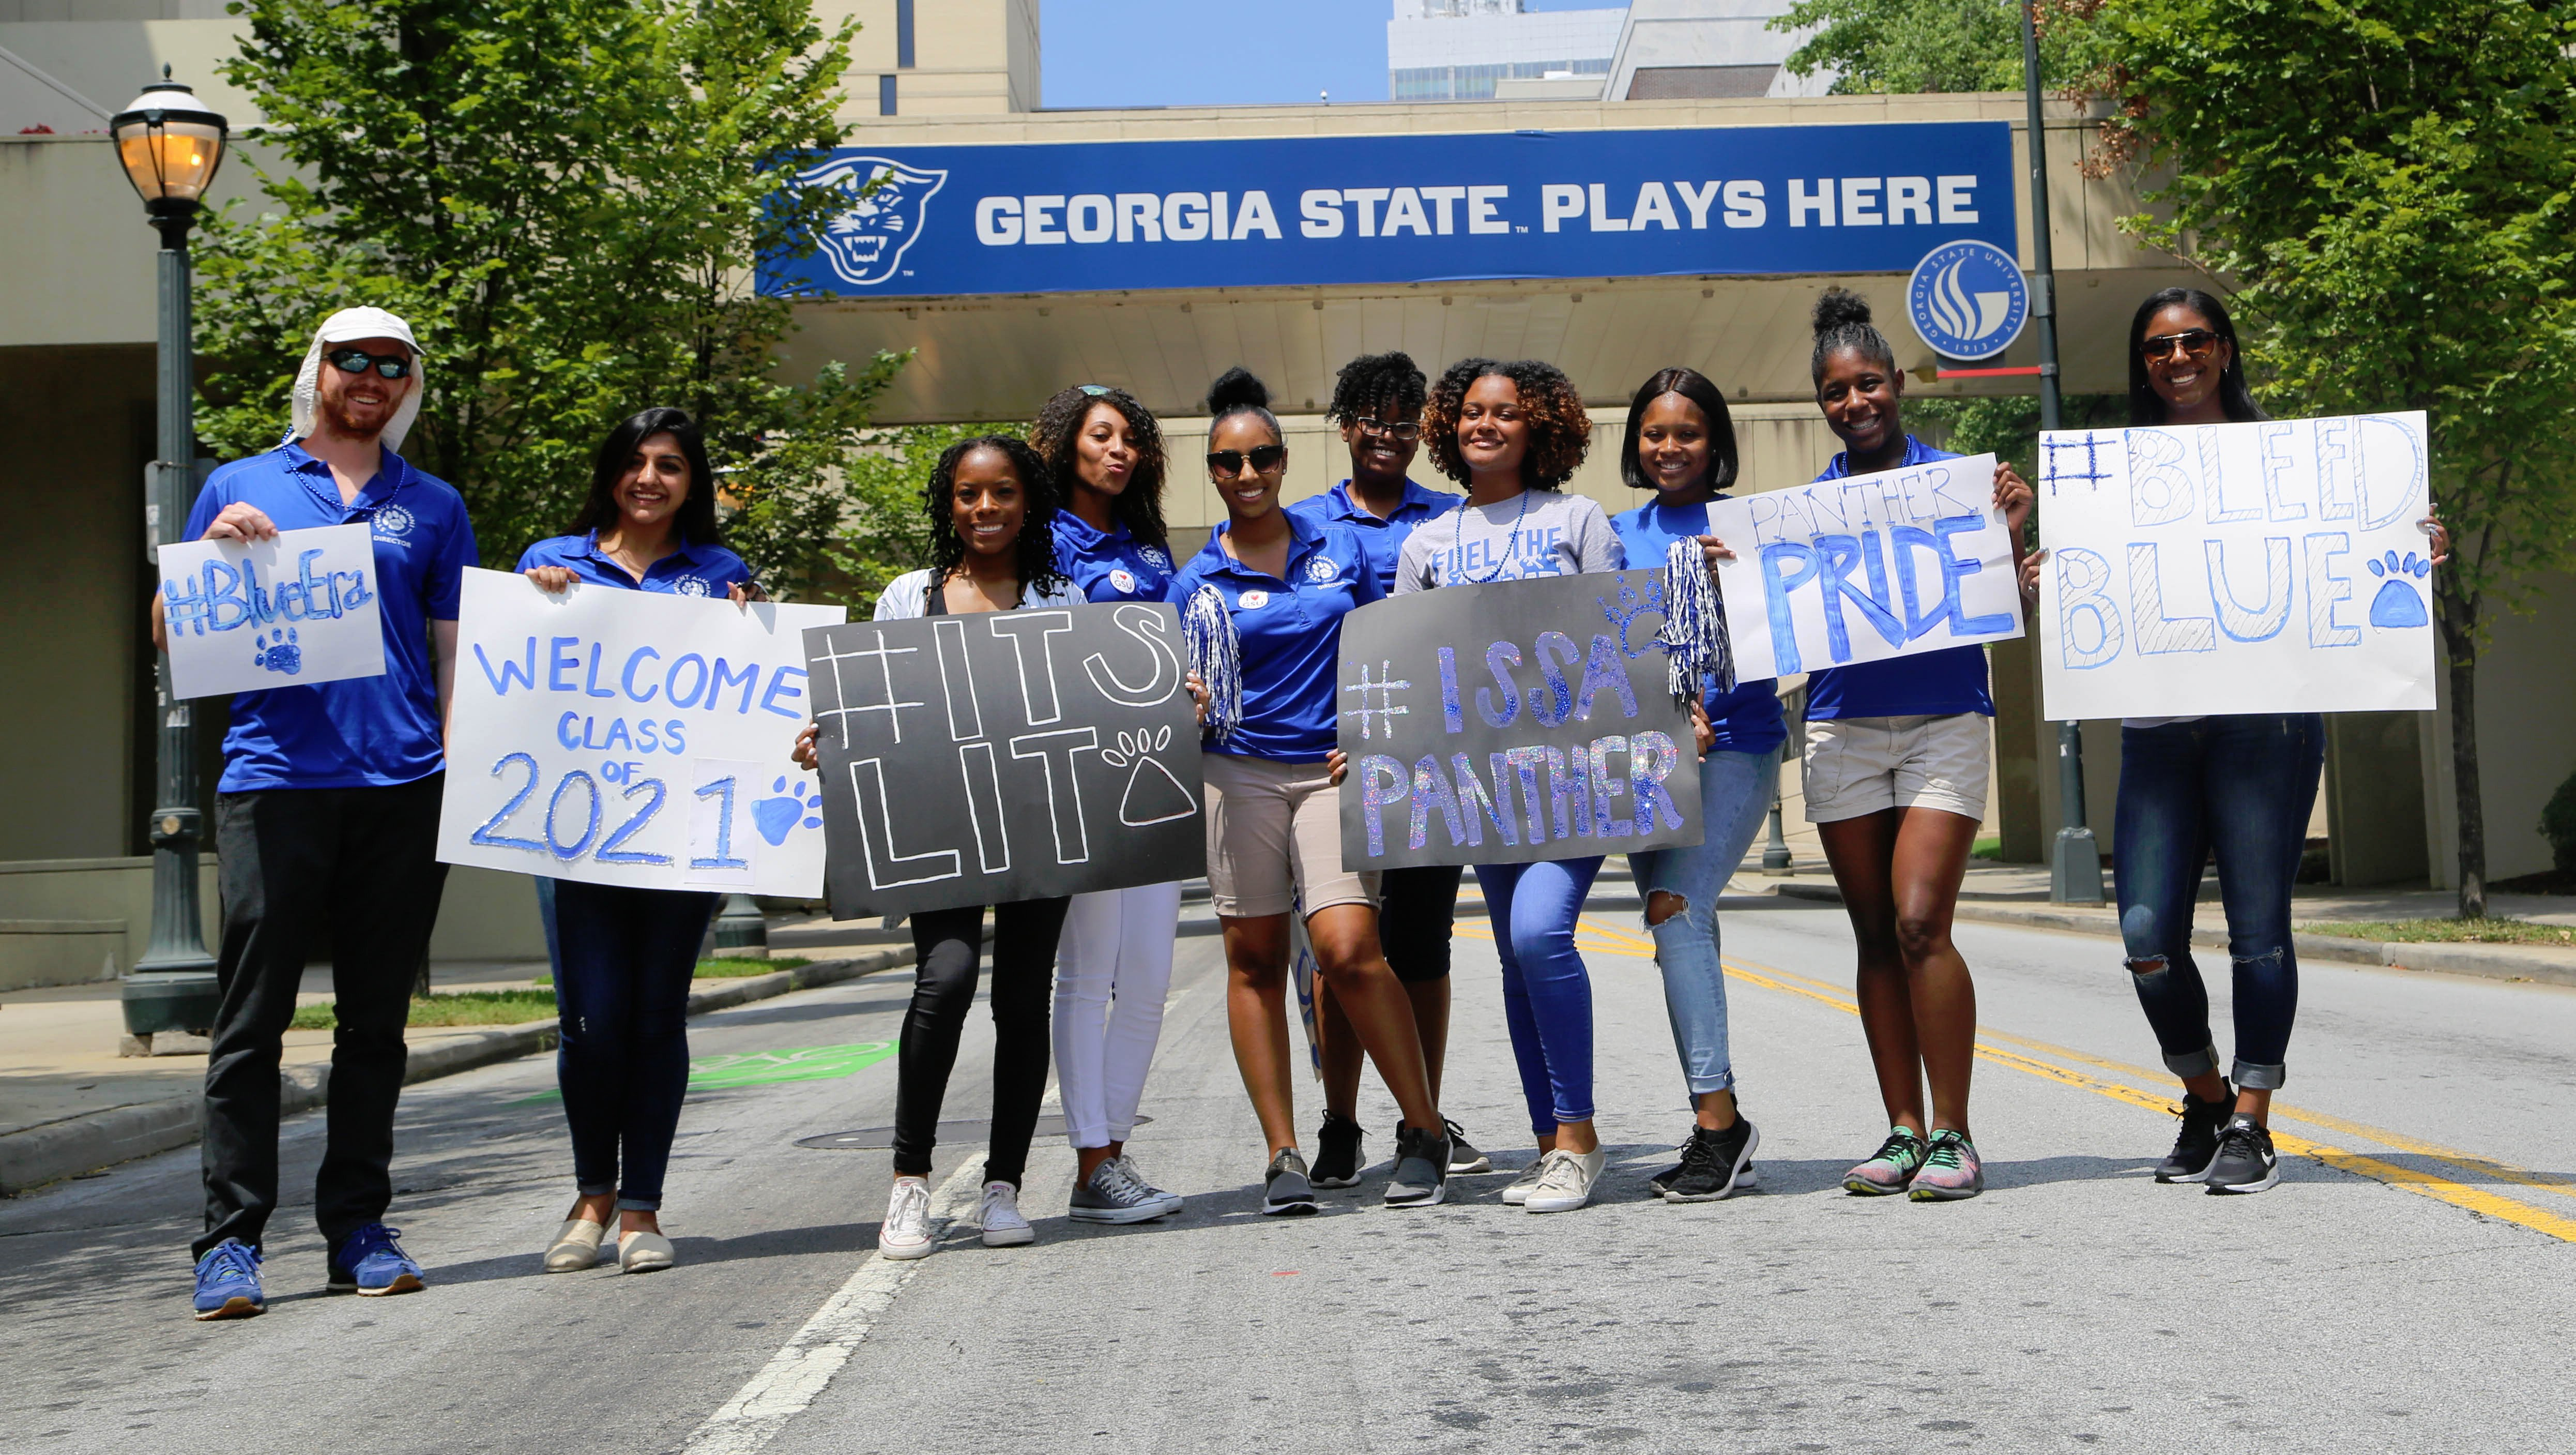 Gsu Alumni Association – Student Alumni Association In Ga State University Calendar 2021